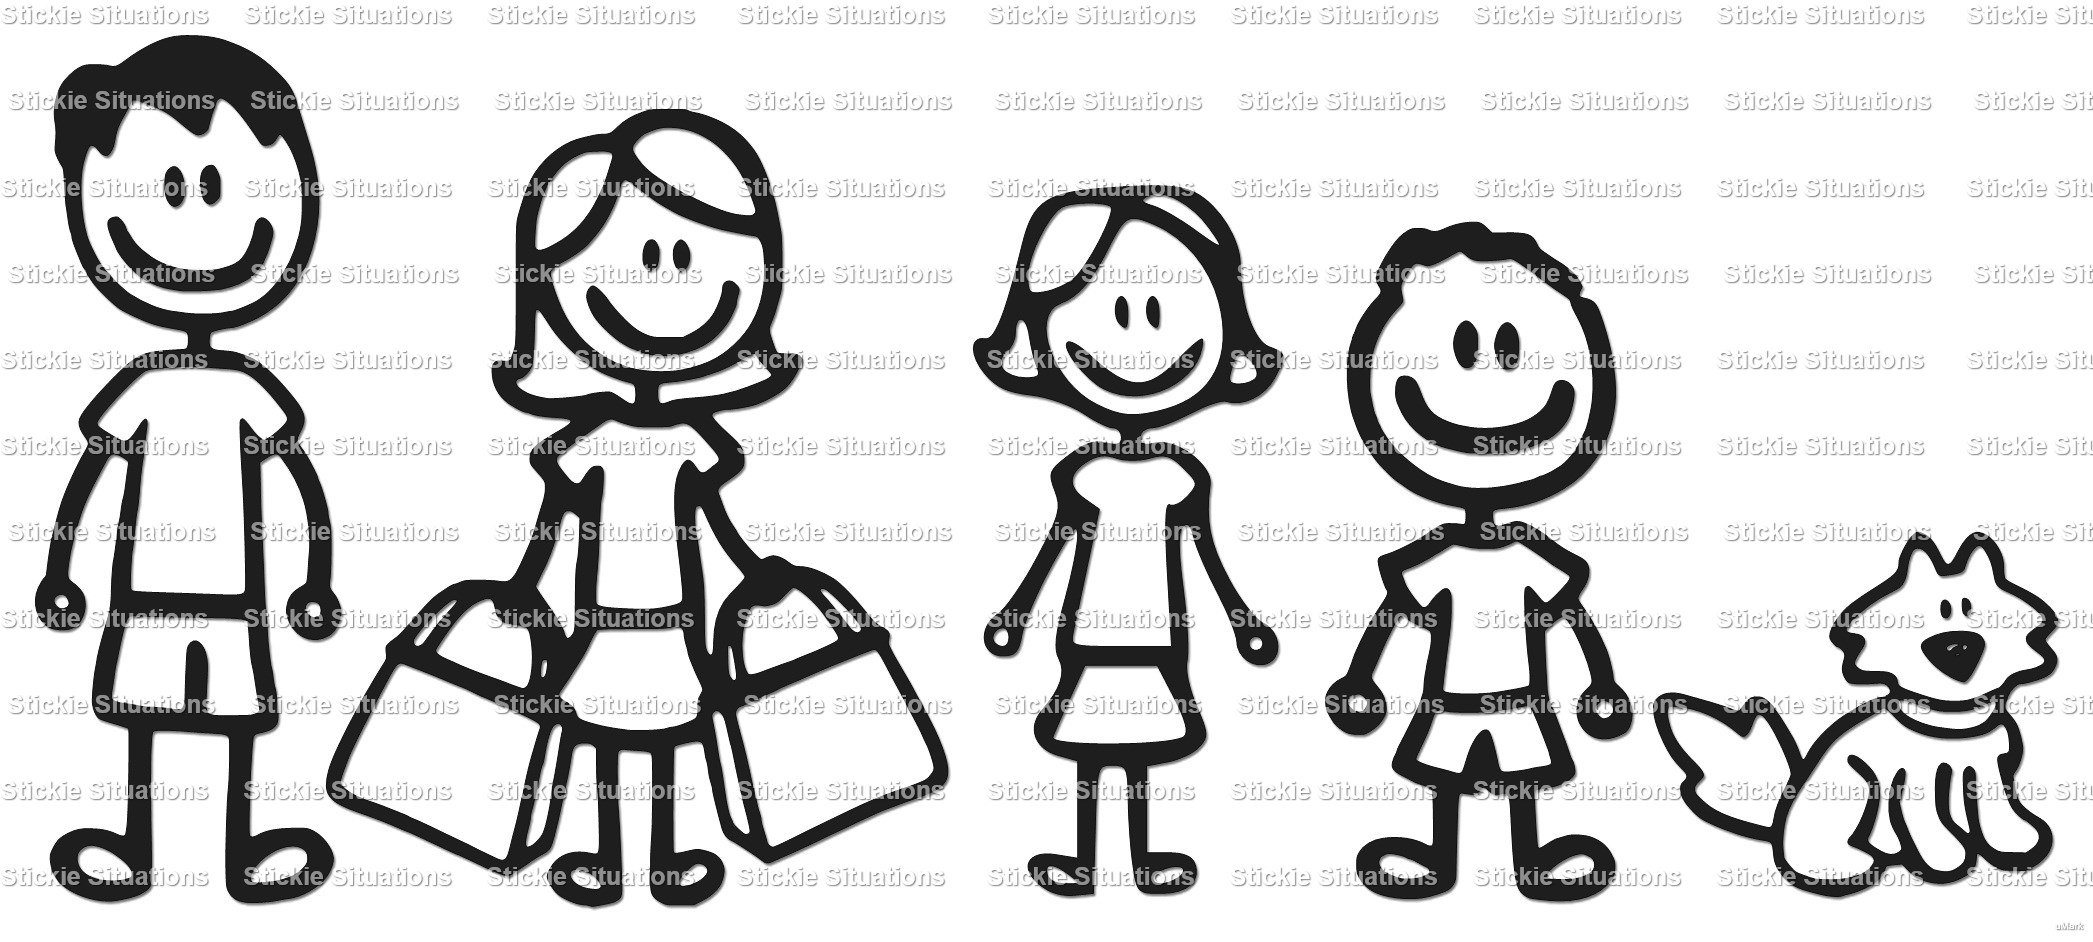 2093x942 Stick Family Car Decal Stickie Situations Online Store Powered